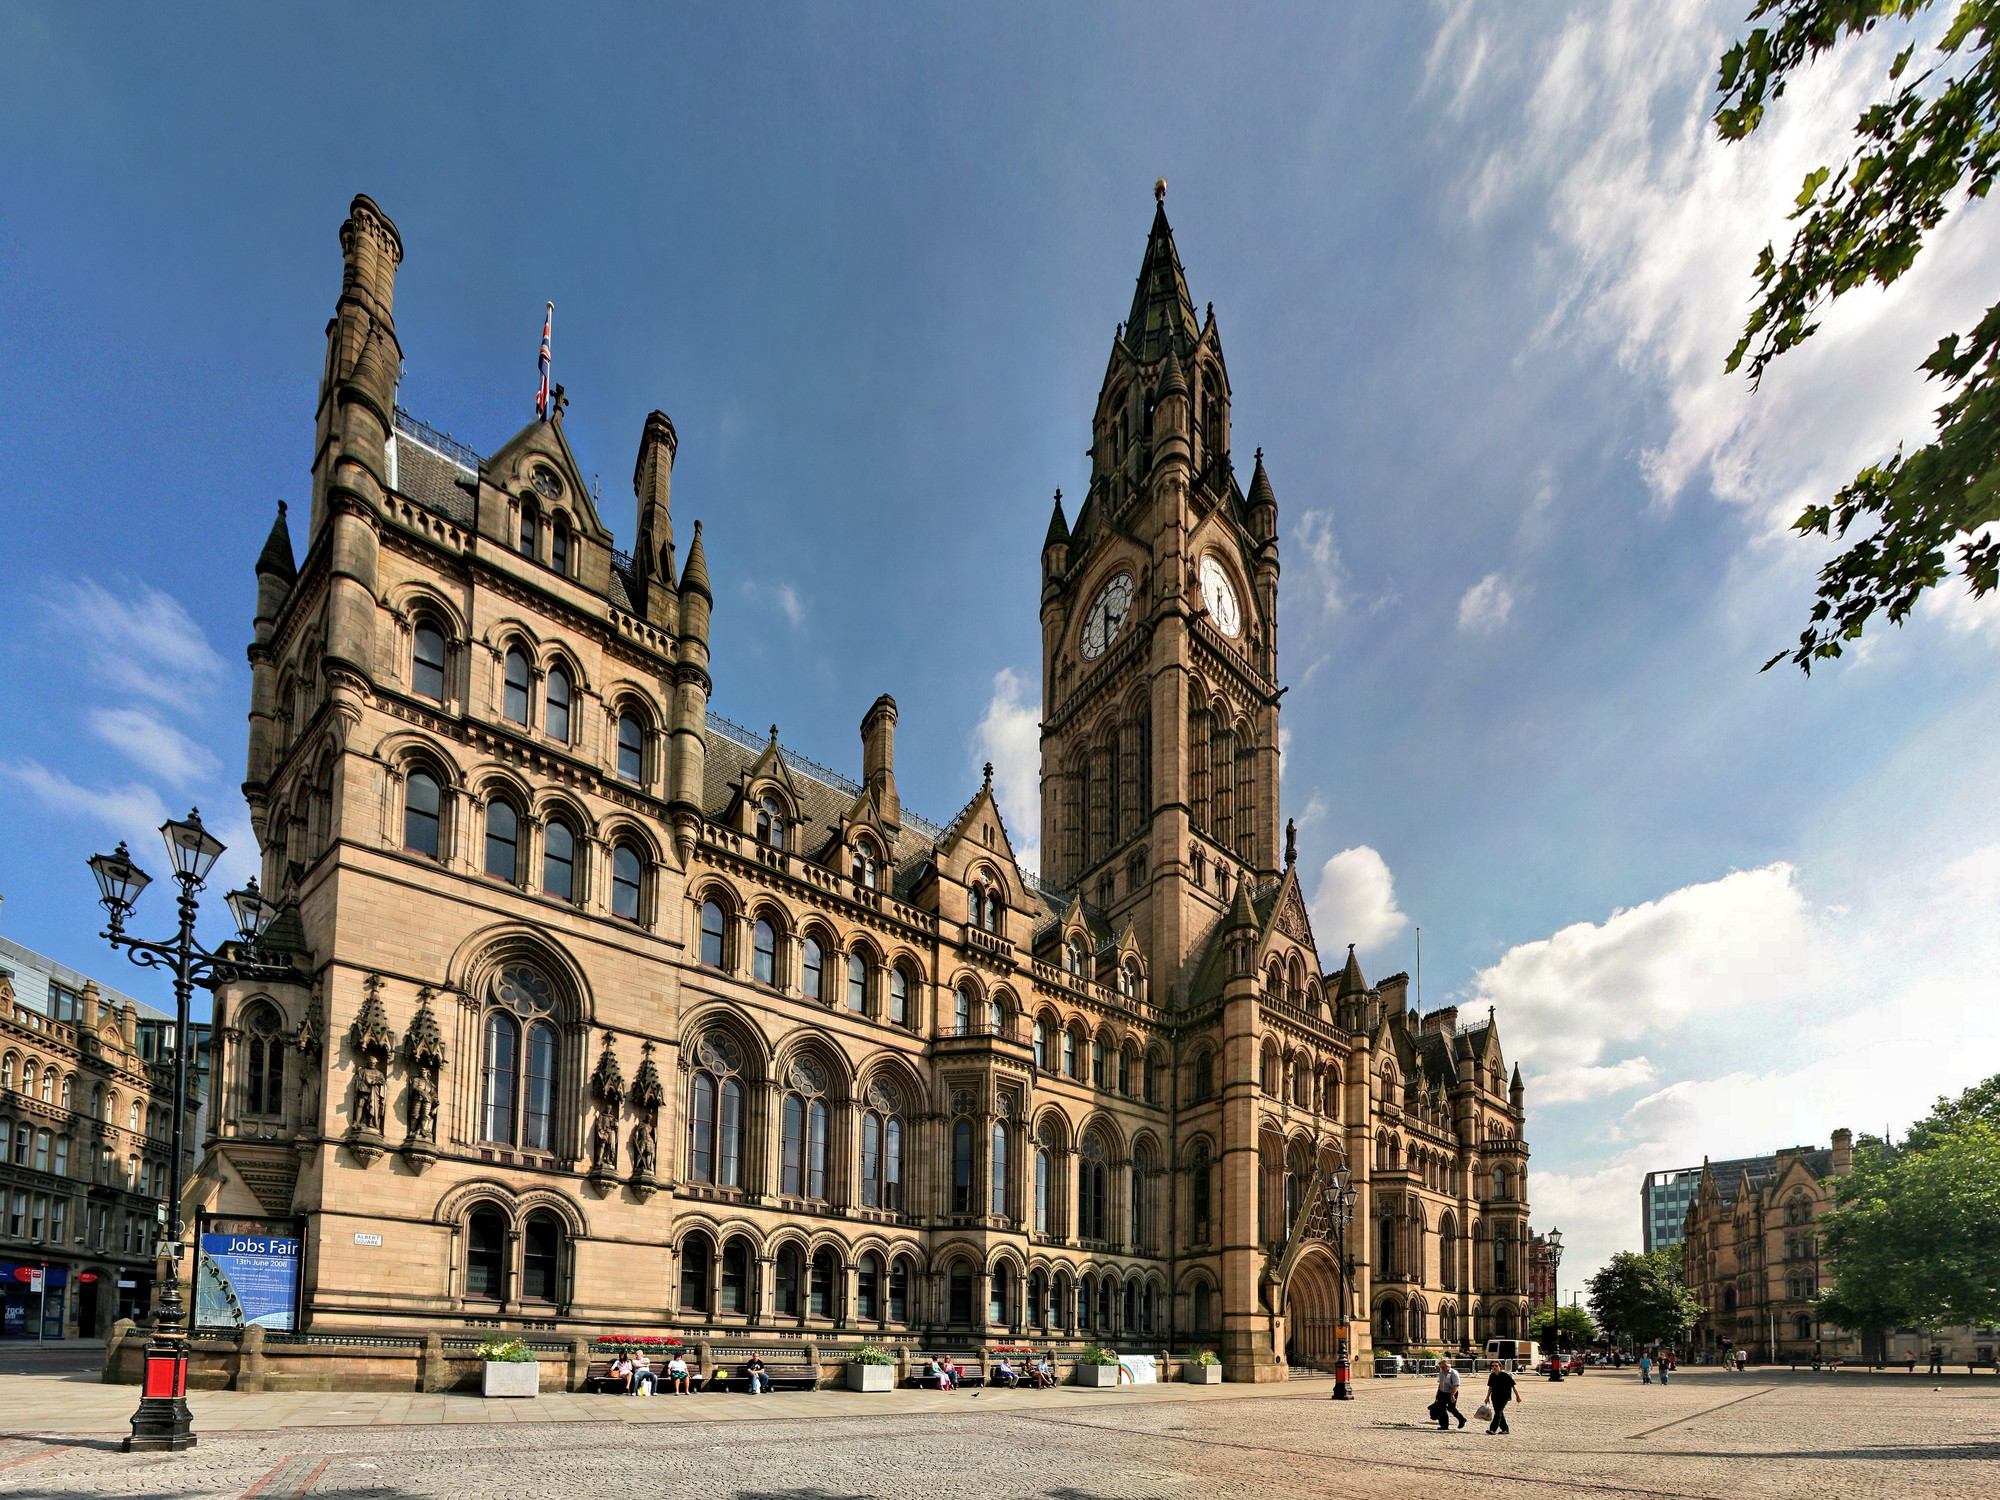 Does Devolution Hold The Key To Greater Investment In The Built Environment?, Manchester Town Hall (Alfred Waterhouse)